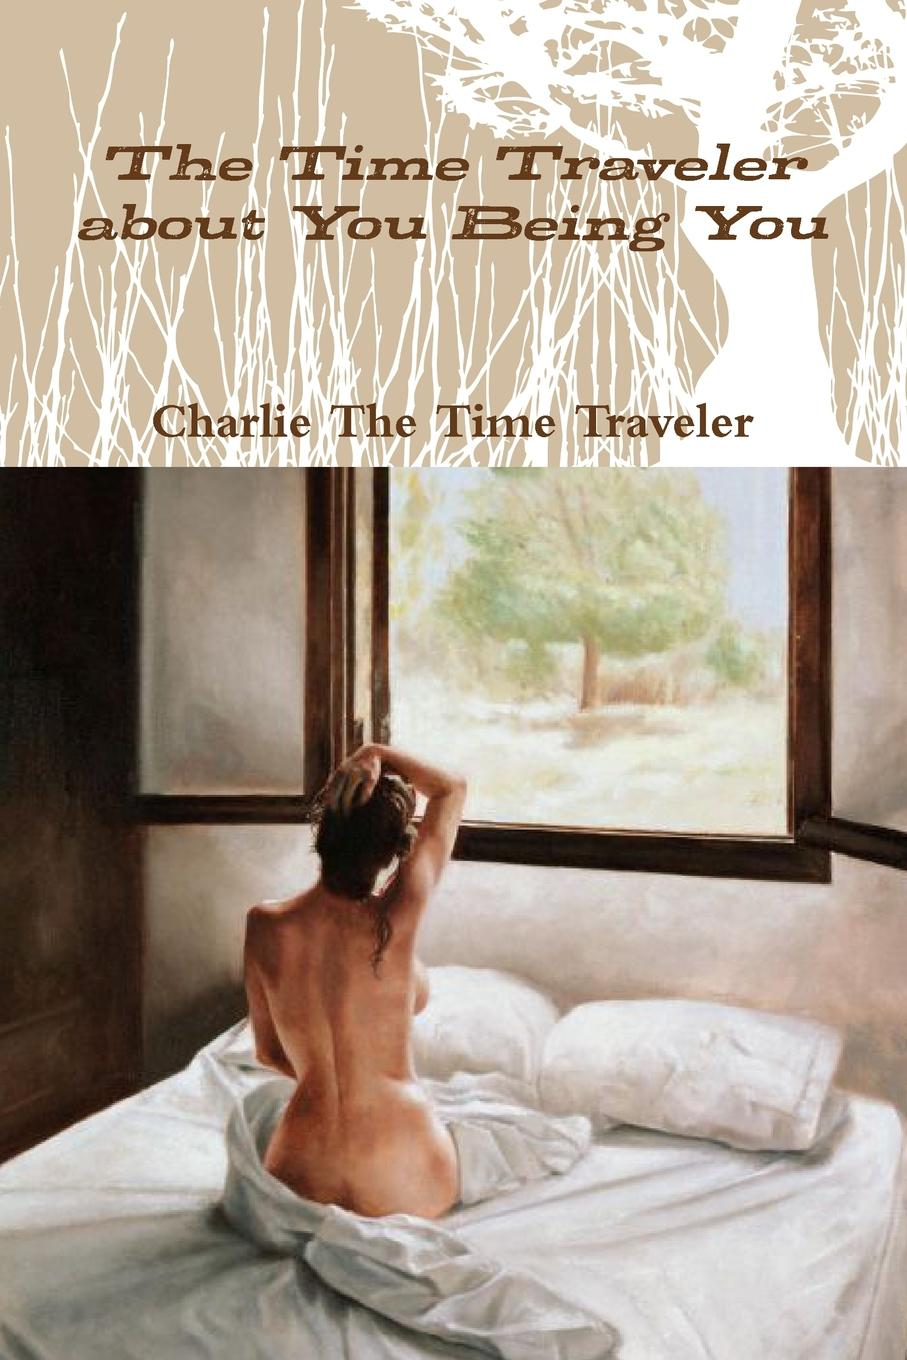 Charlie The Time Traveler The Time Traveler about You Being You mike george being beyond belief 30 beliefs you will have to kill before they kill you